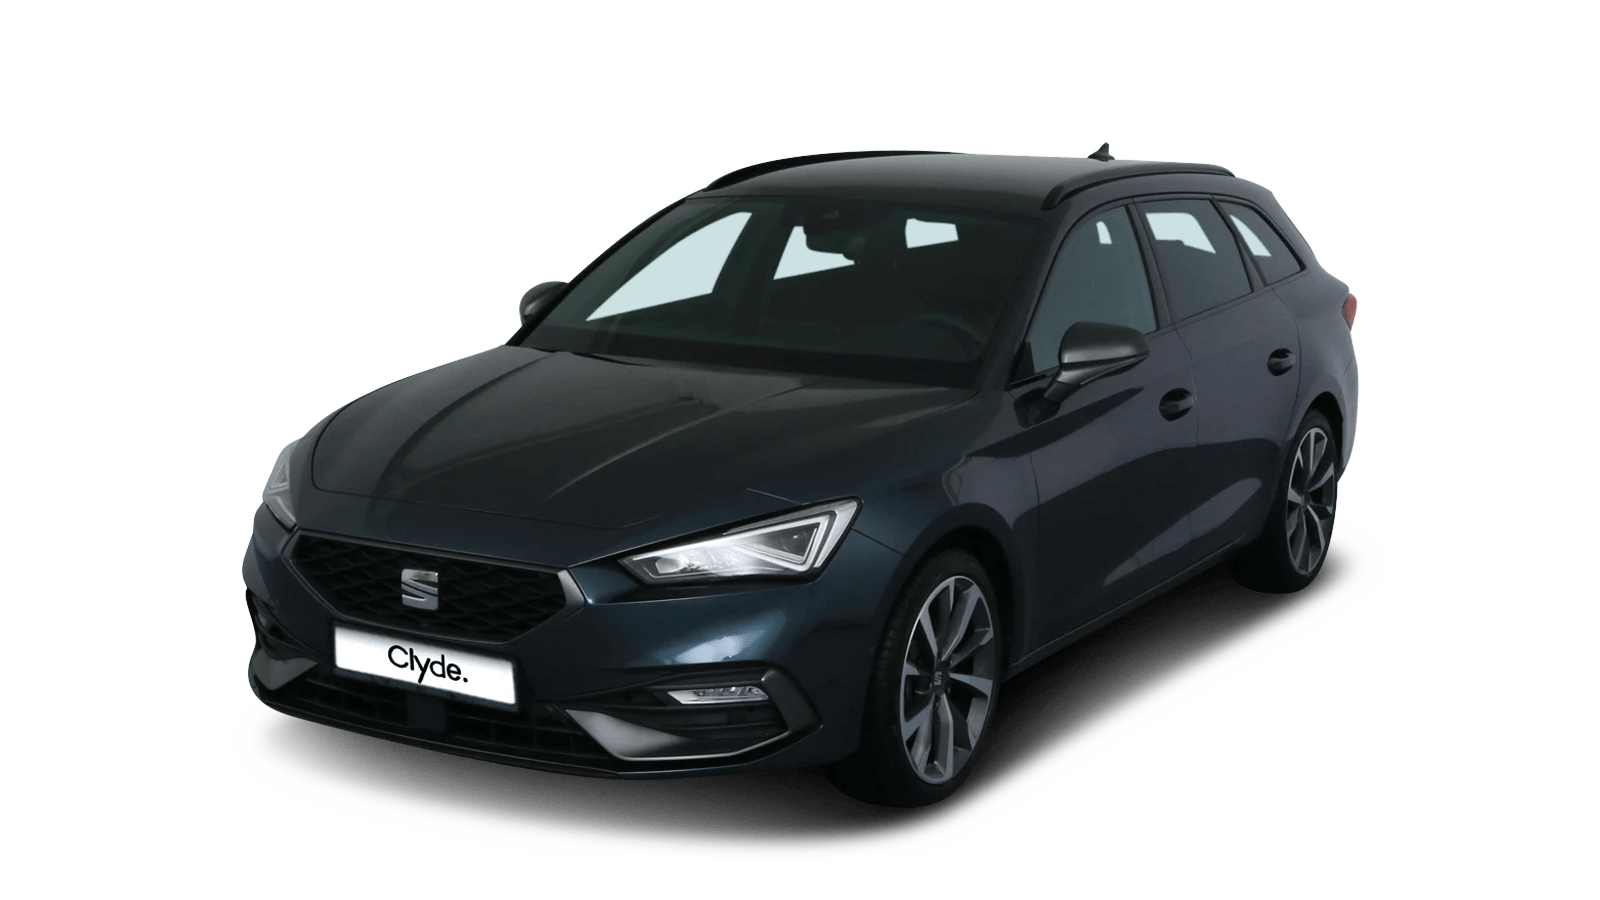 SEAT Leon Sportstourer eTSI Grey front - Clyde car subscription